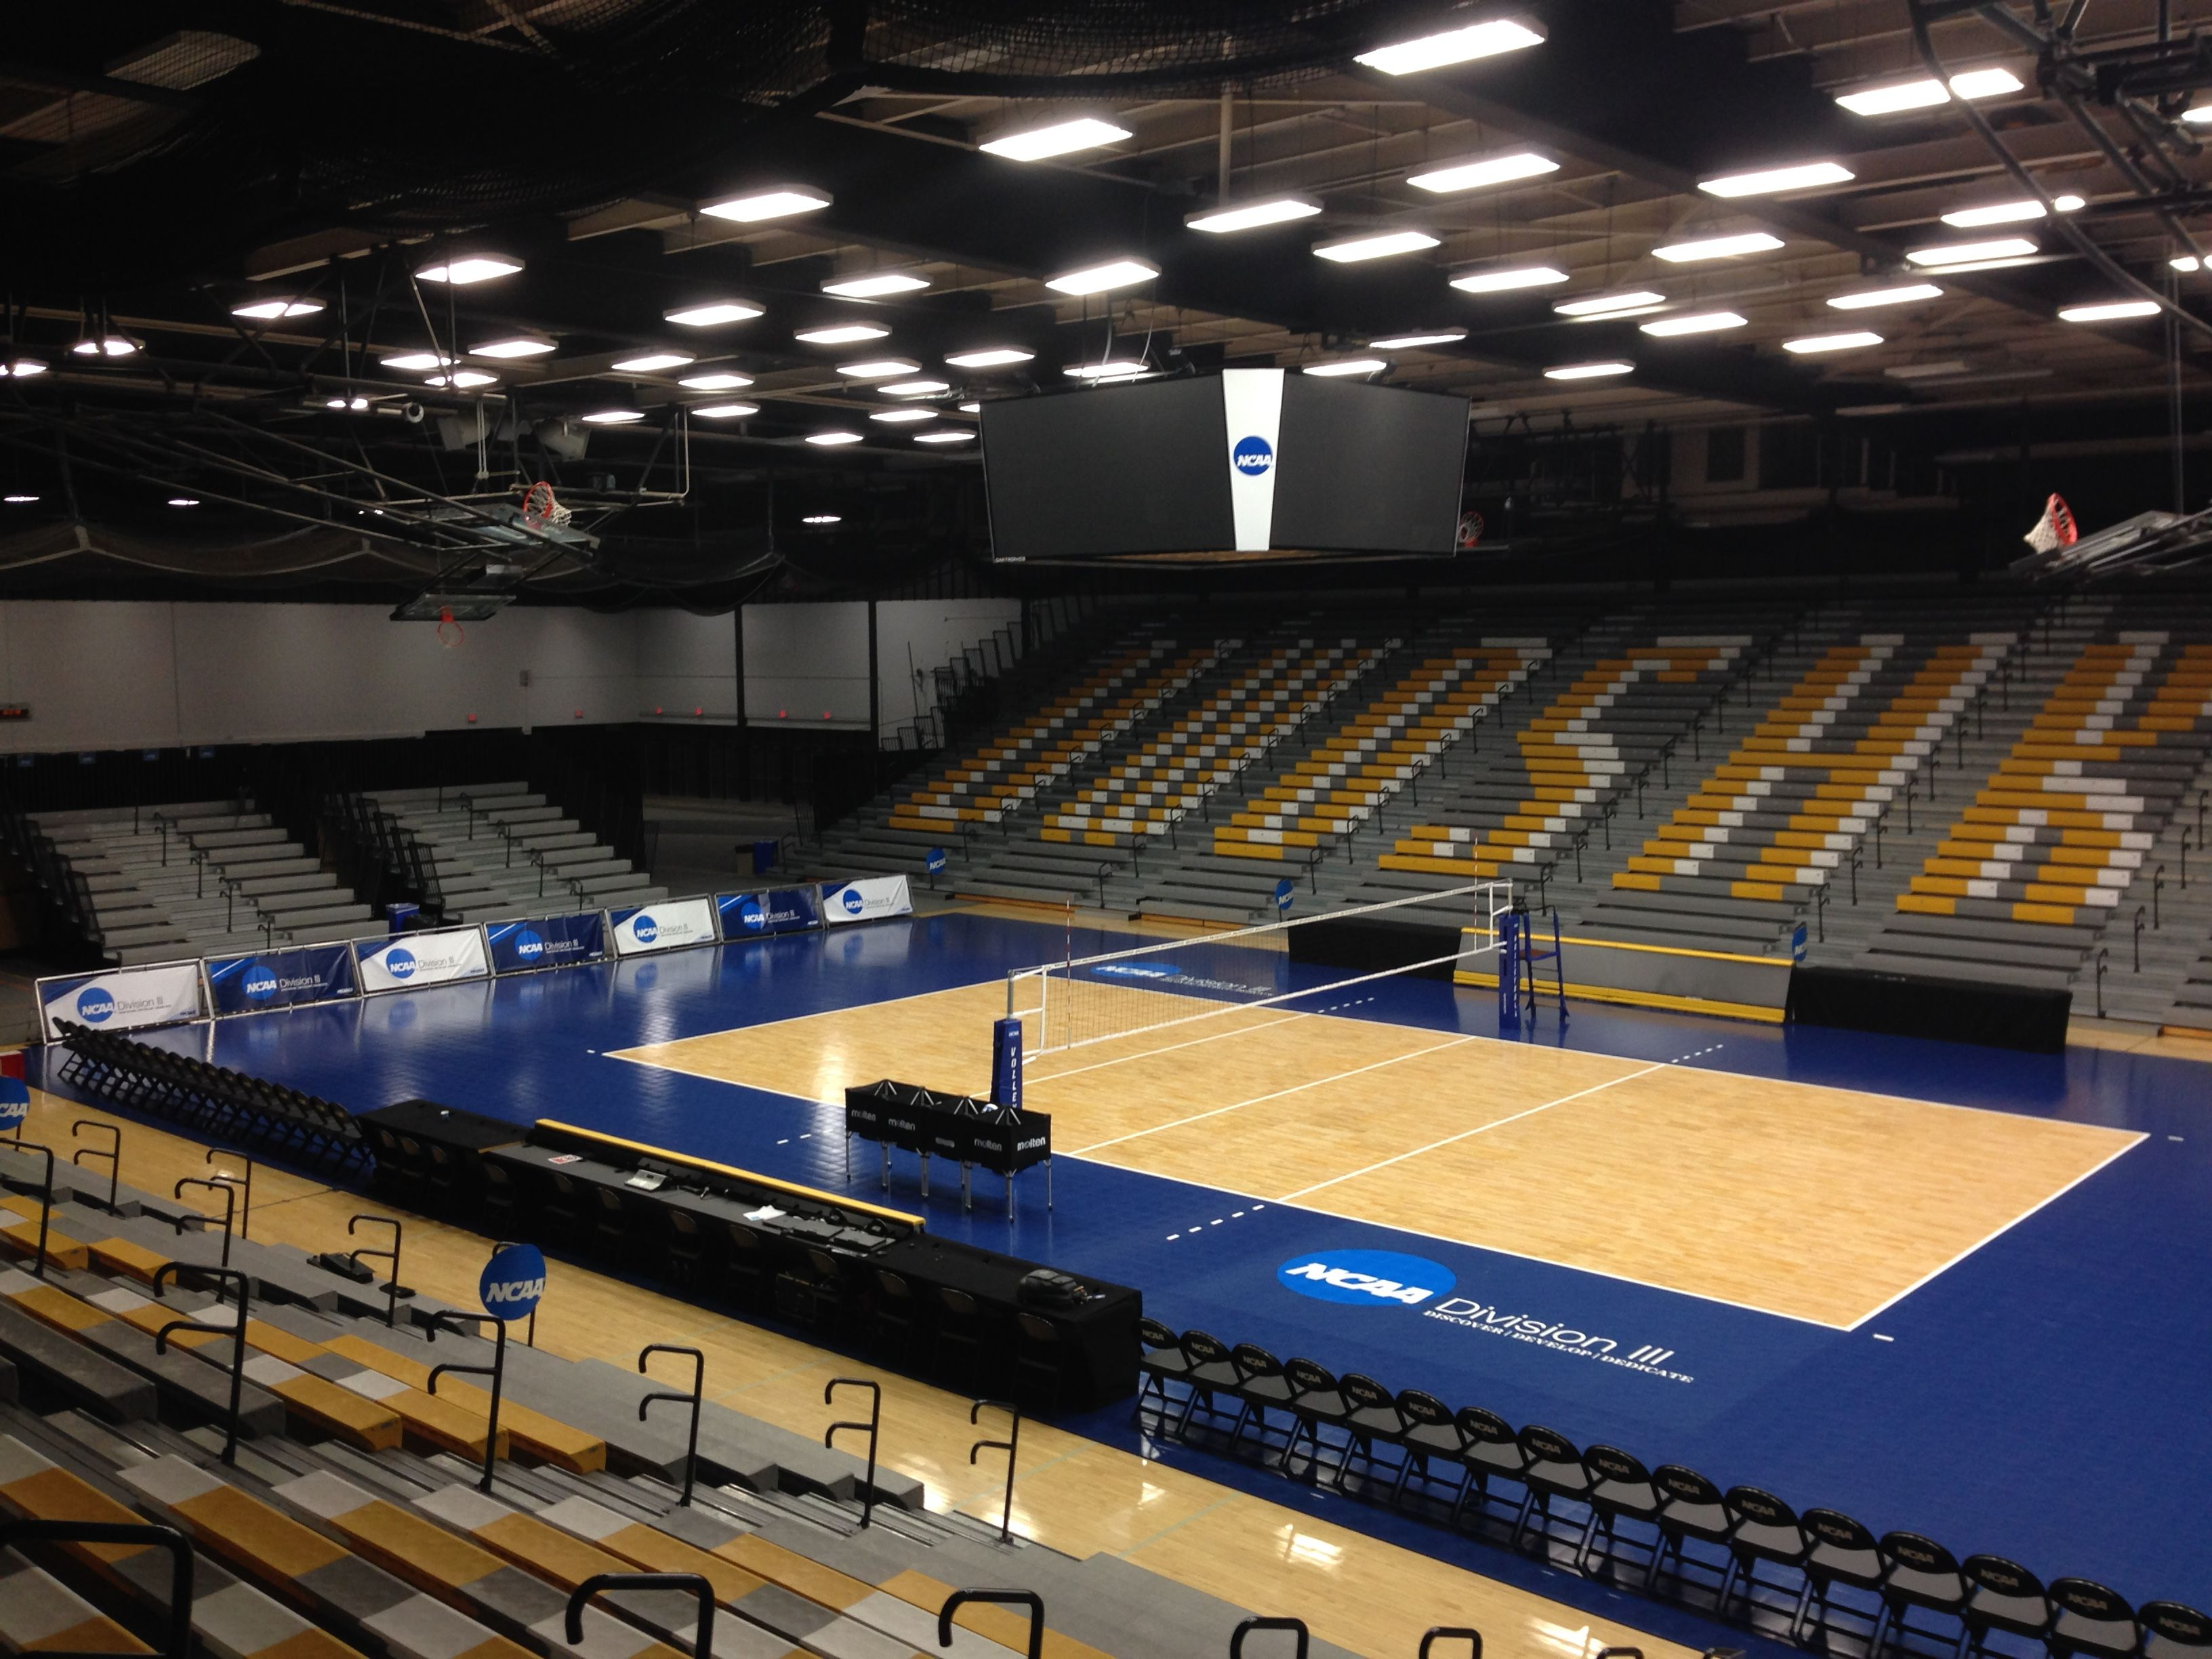 At The Center Of The Ncaa Division Iii Women S Volleyball Championship Ncaavb Women Volleyball Volleyball Ncaa